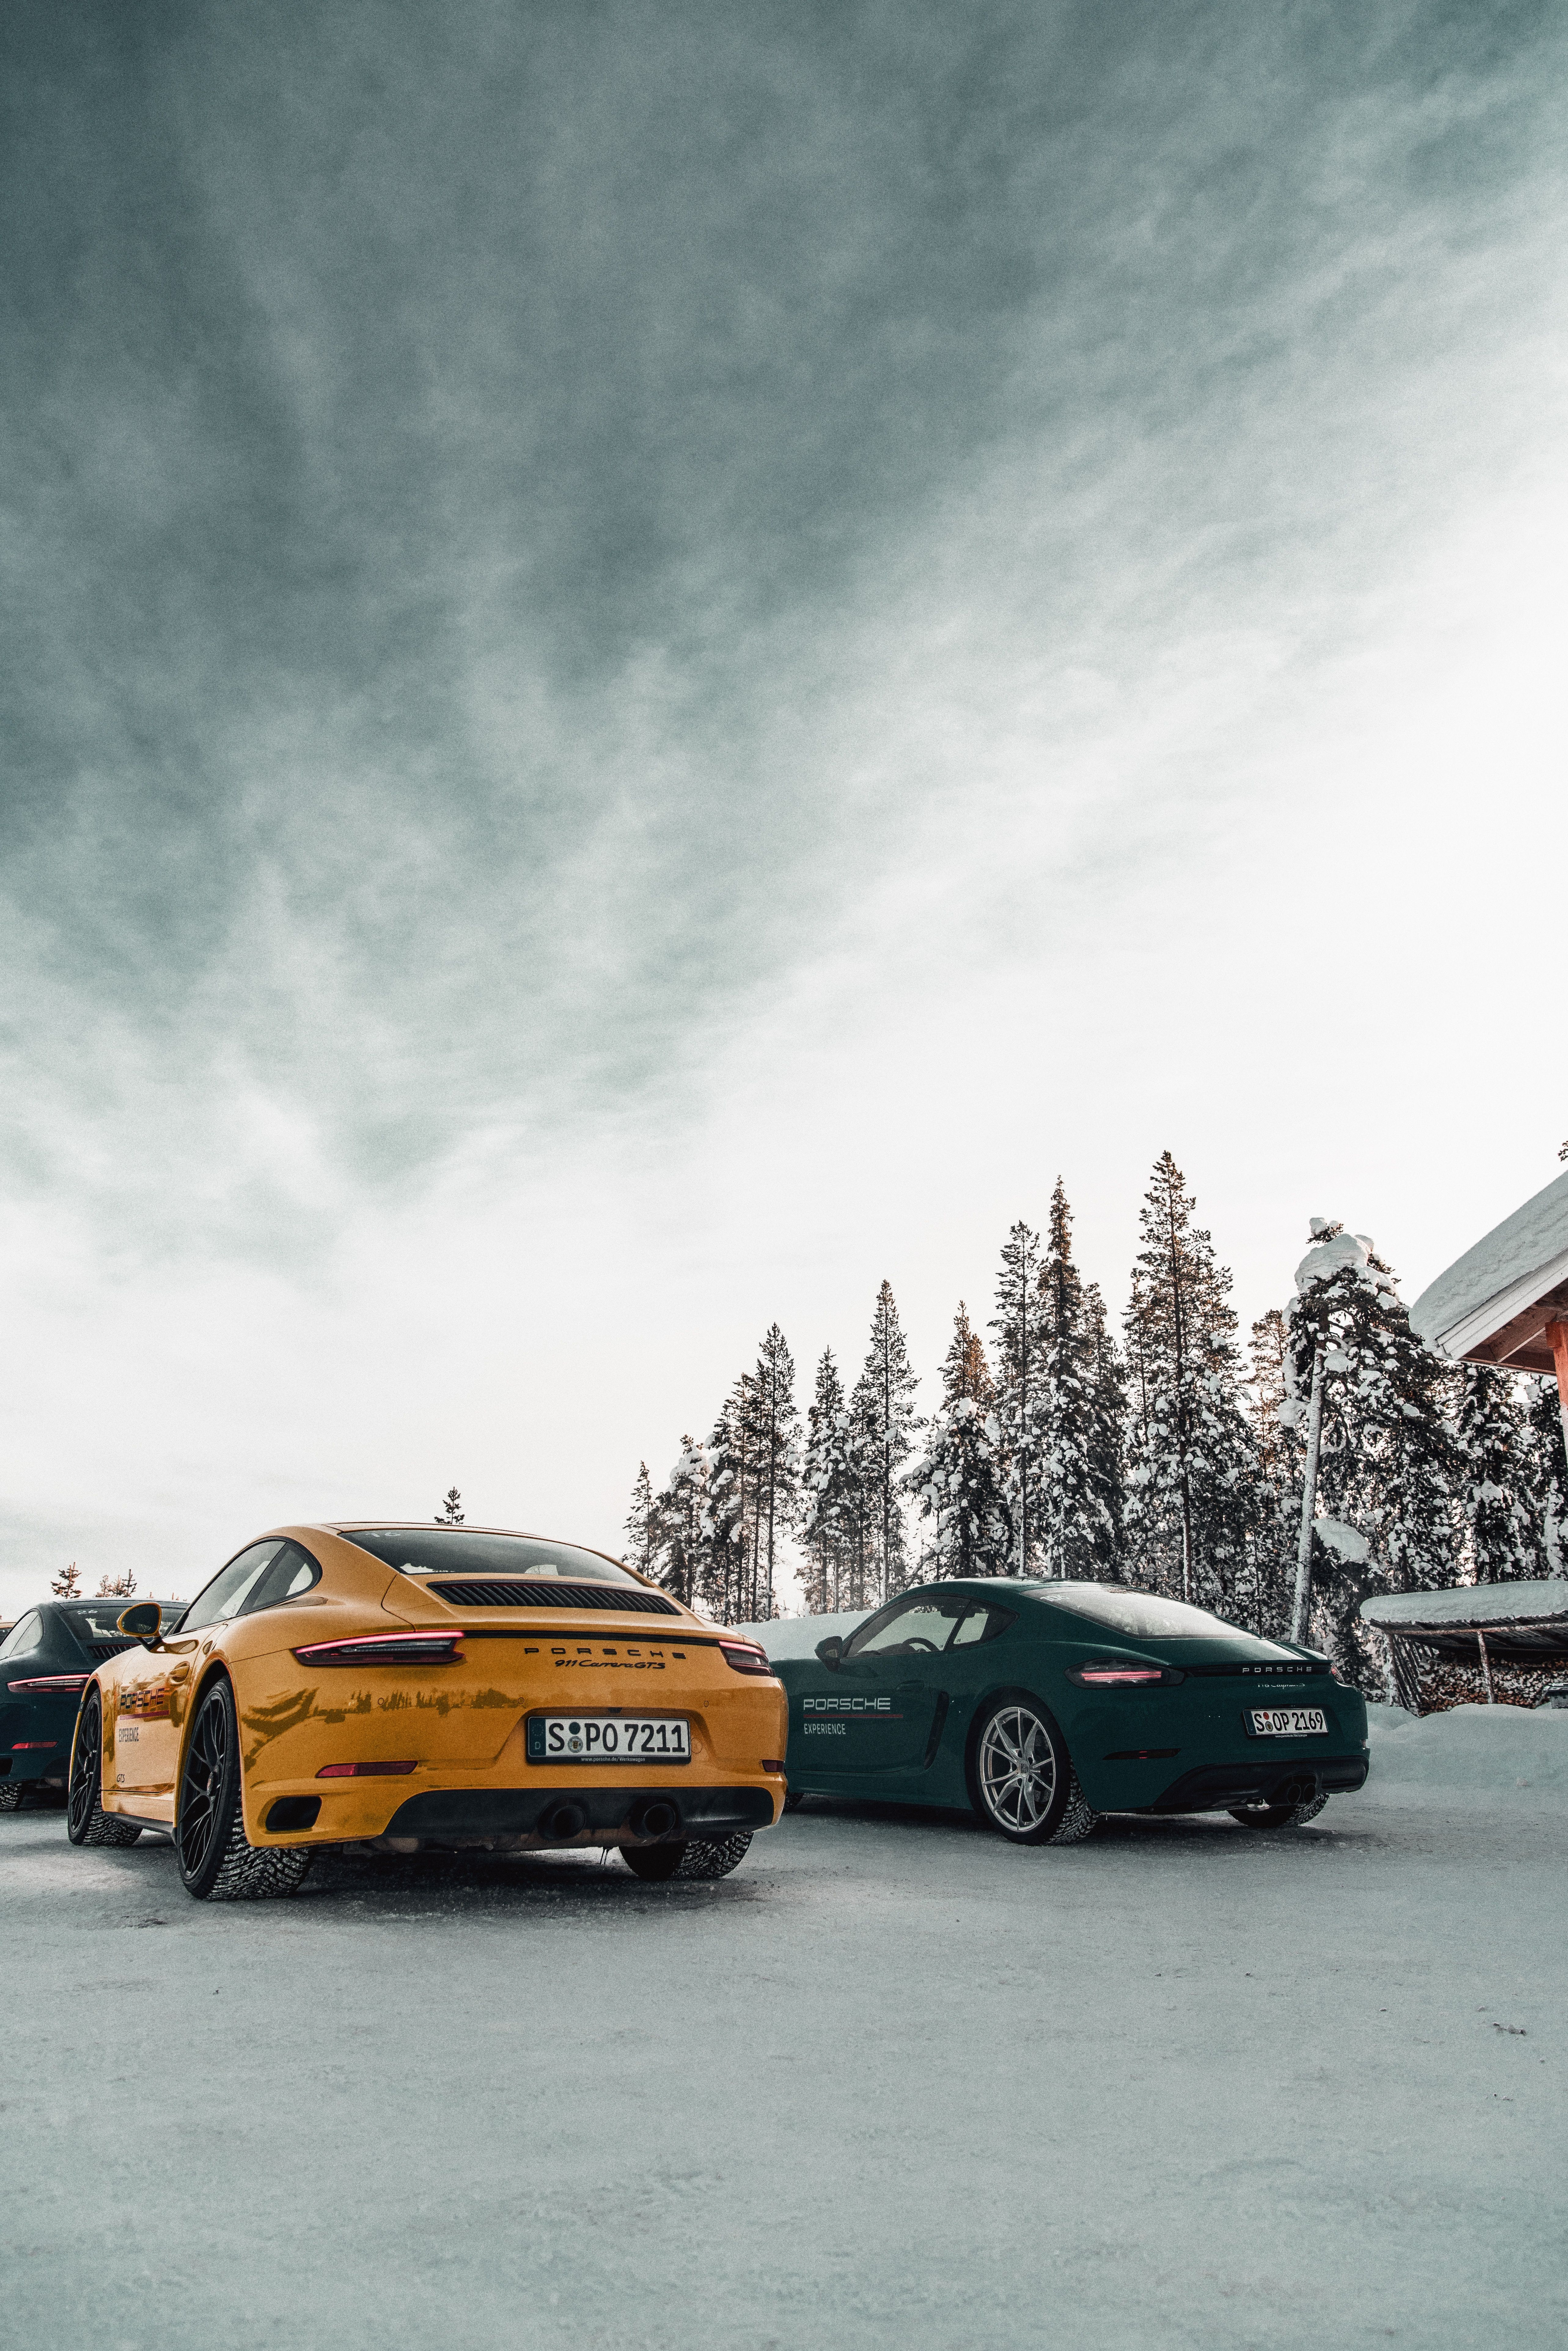 78155 Screensavers and Wallpapers Races for phone. Download Sports, Porsche, Races, Snow, Cars, Sports Car pictures for free